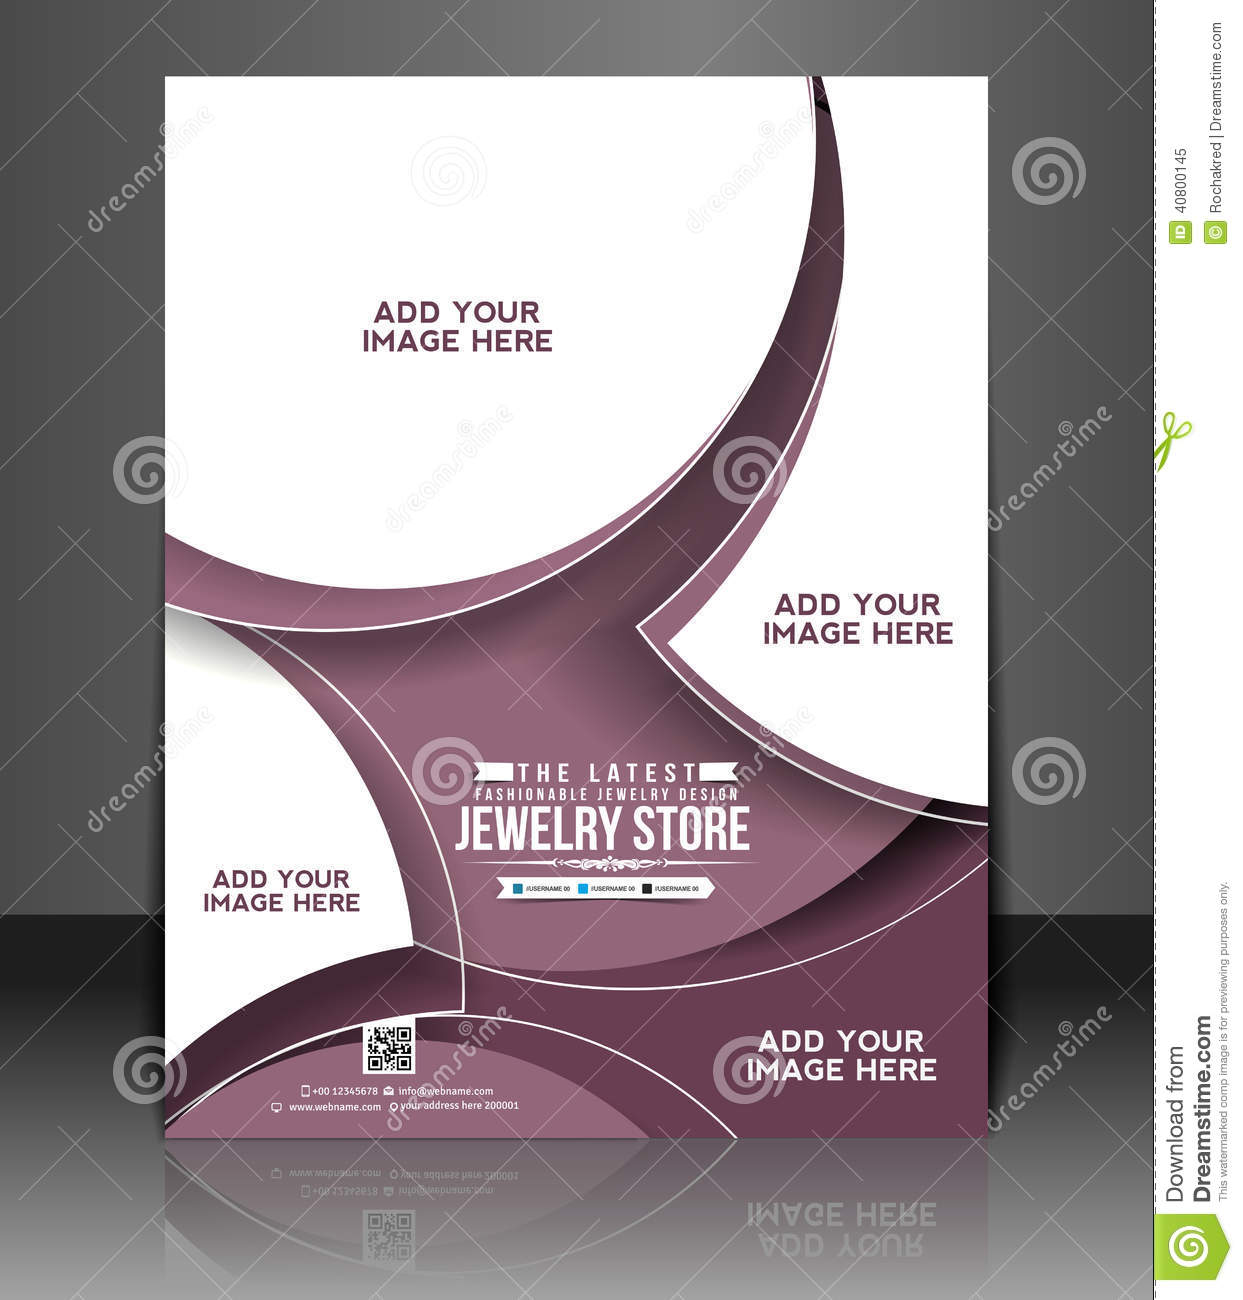 Jewelry Store Flyer Design Stock Vector Illustration Of Card 40800145